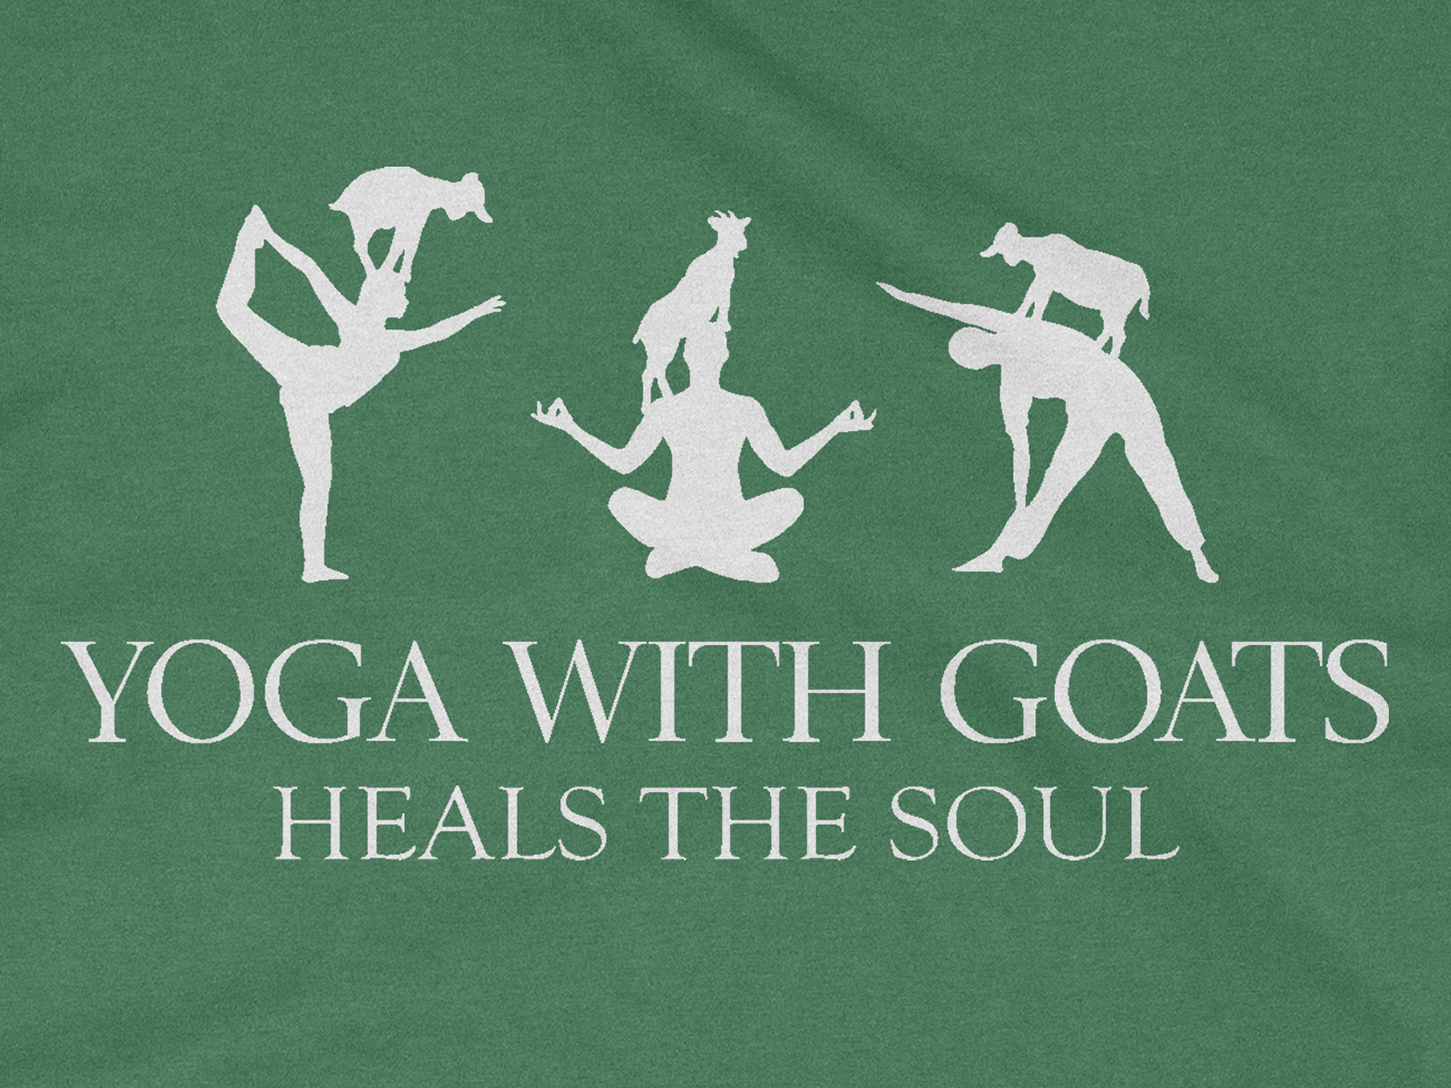 Yoga With Goats Heals The Soul